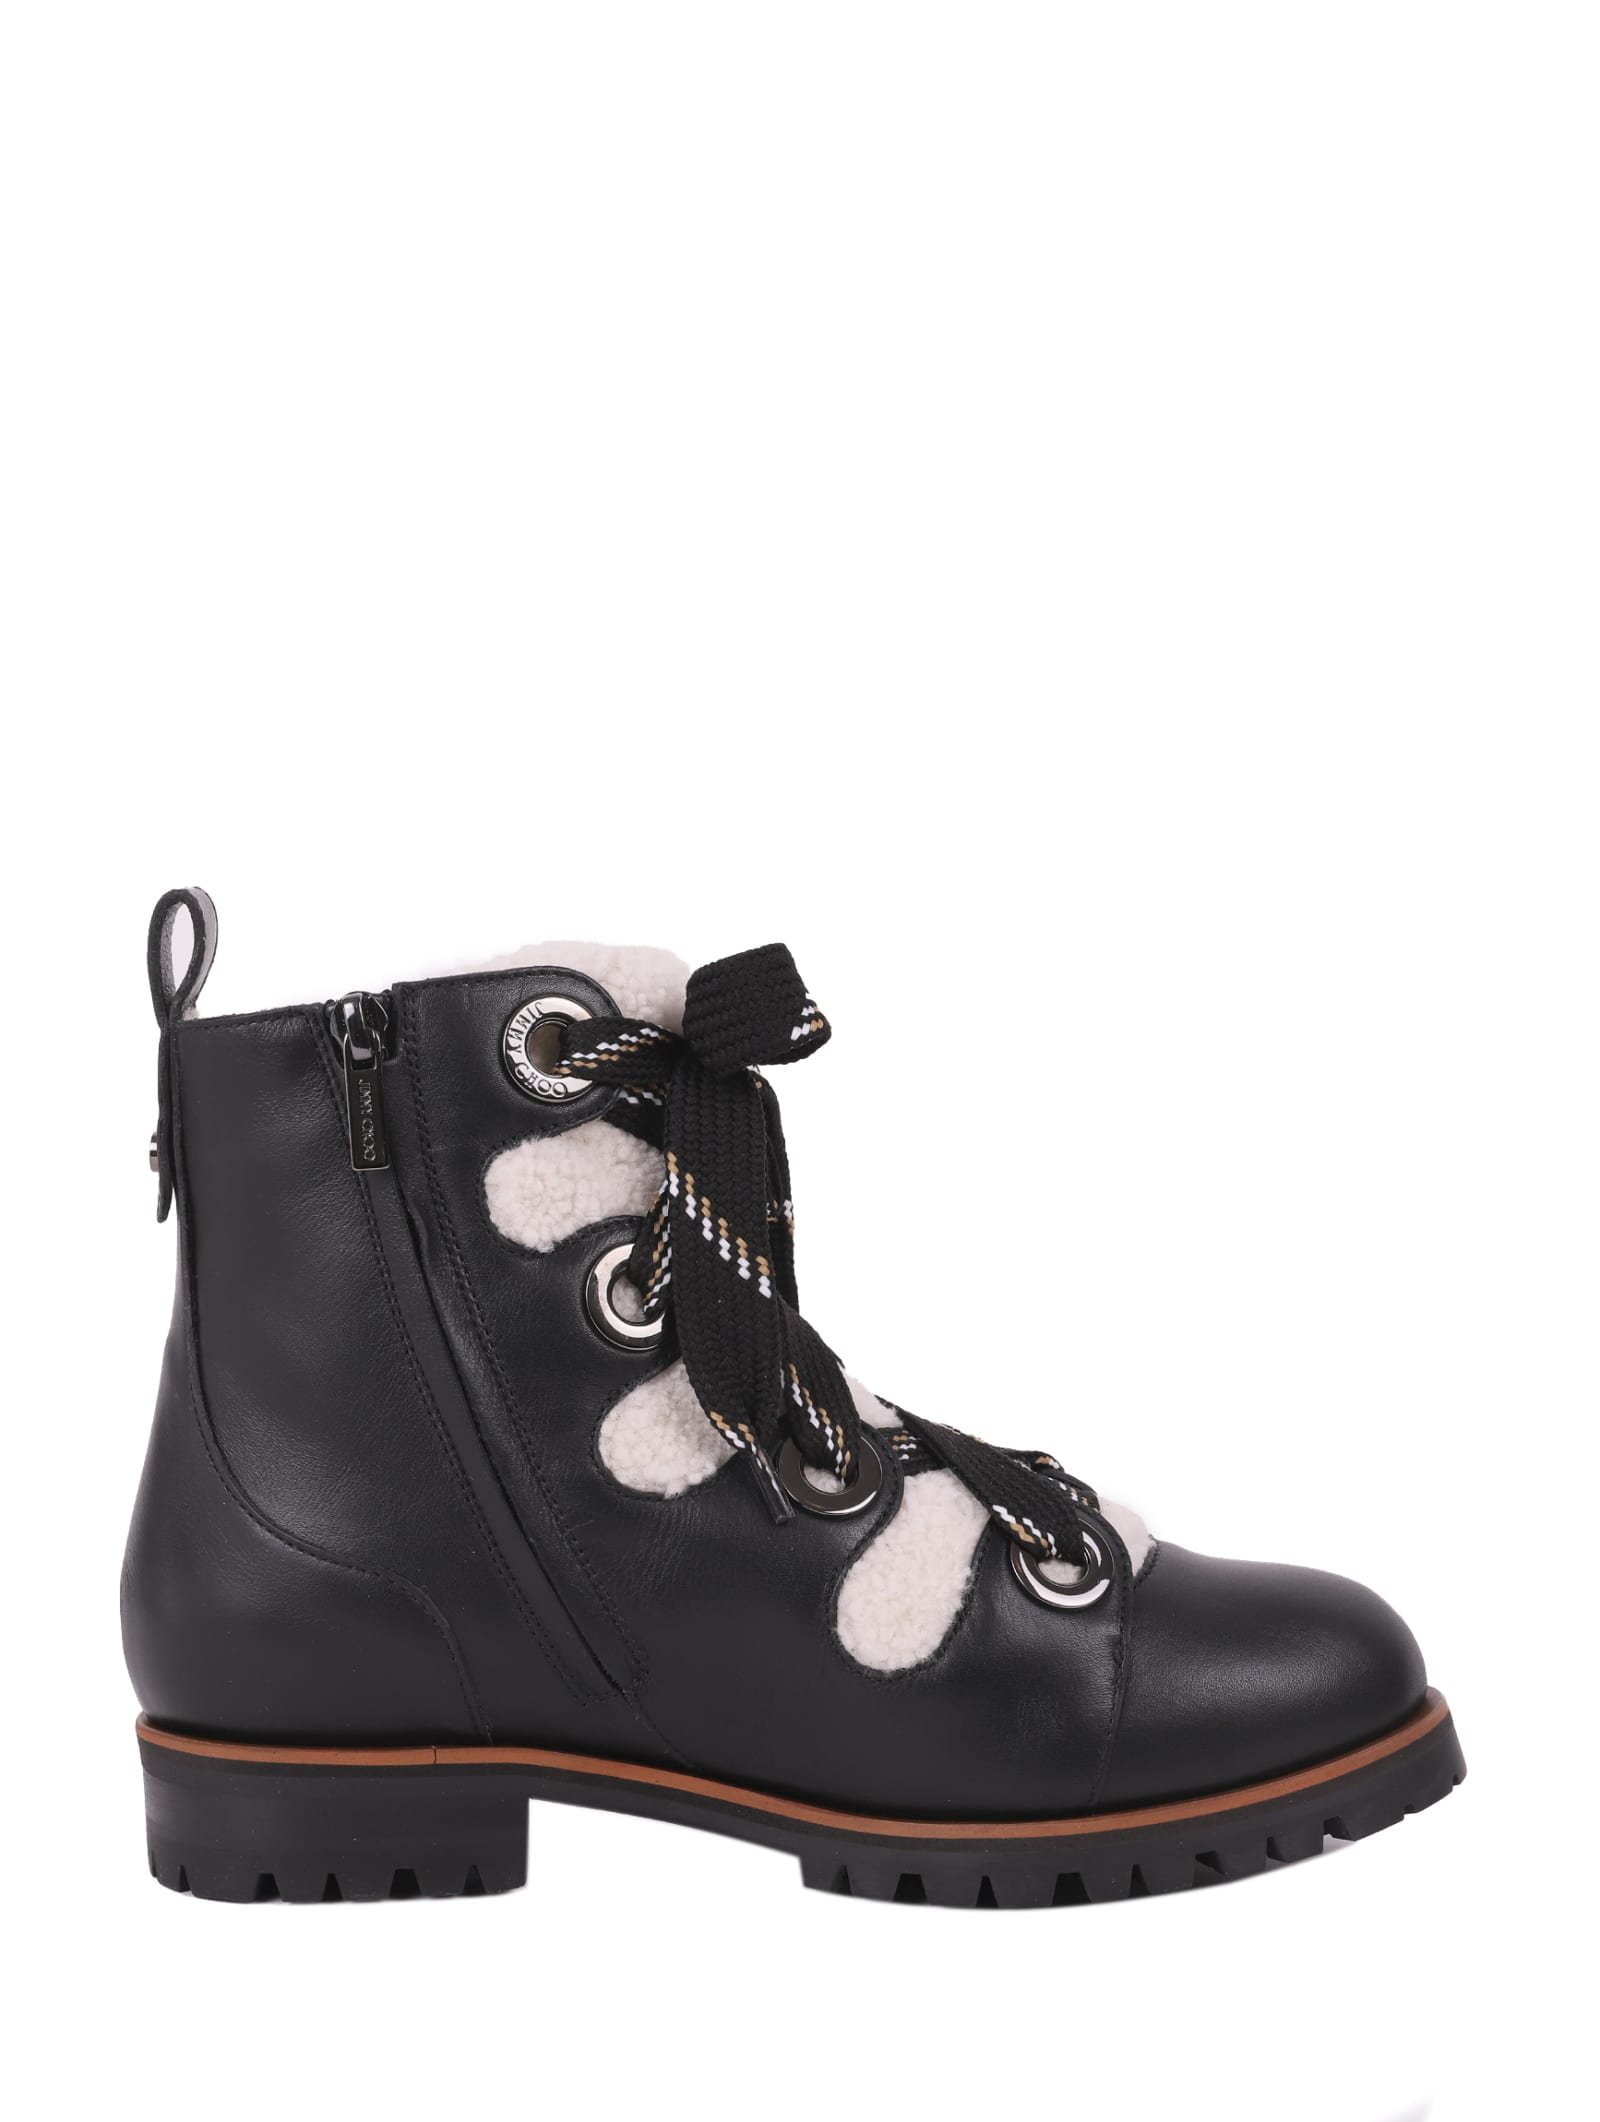 Jimmy Choo Black Bei Boots